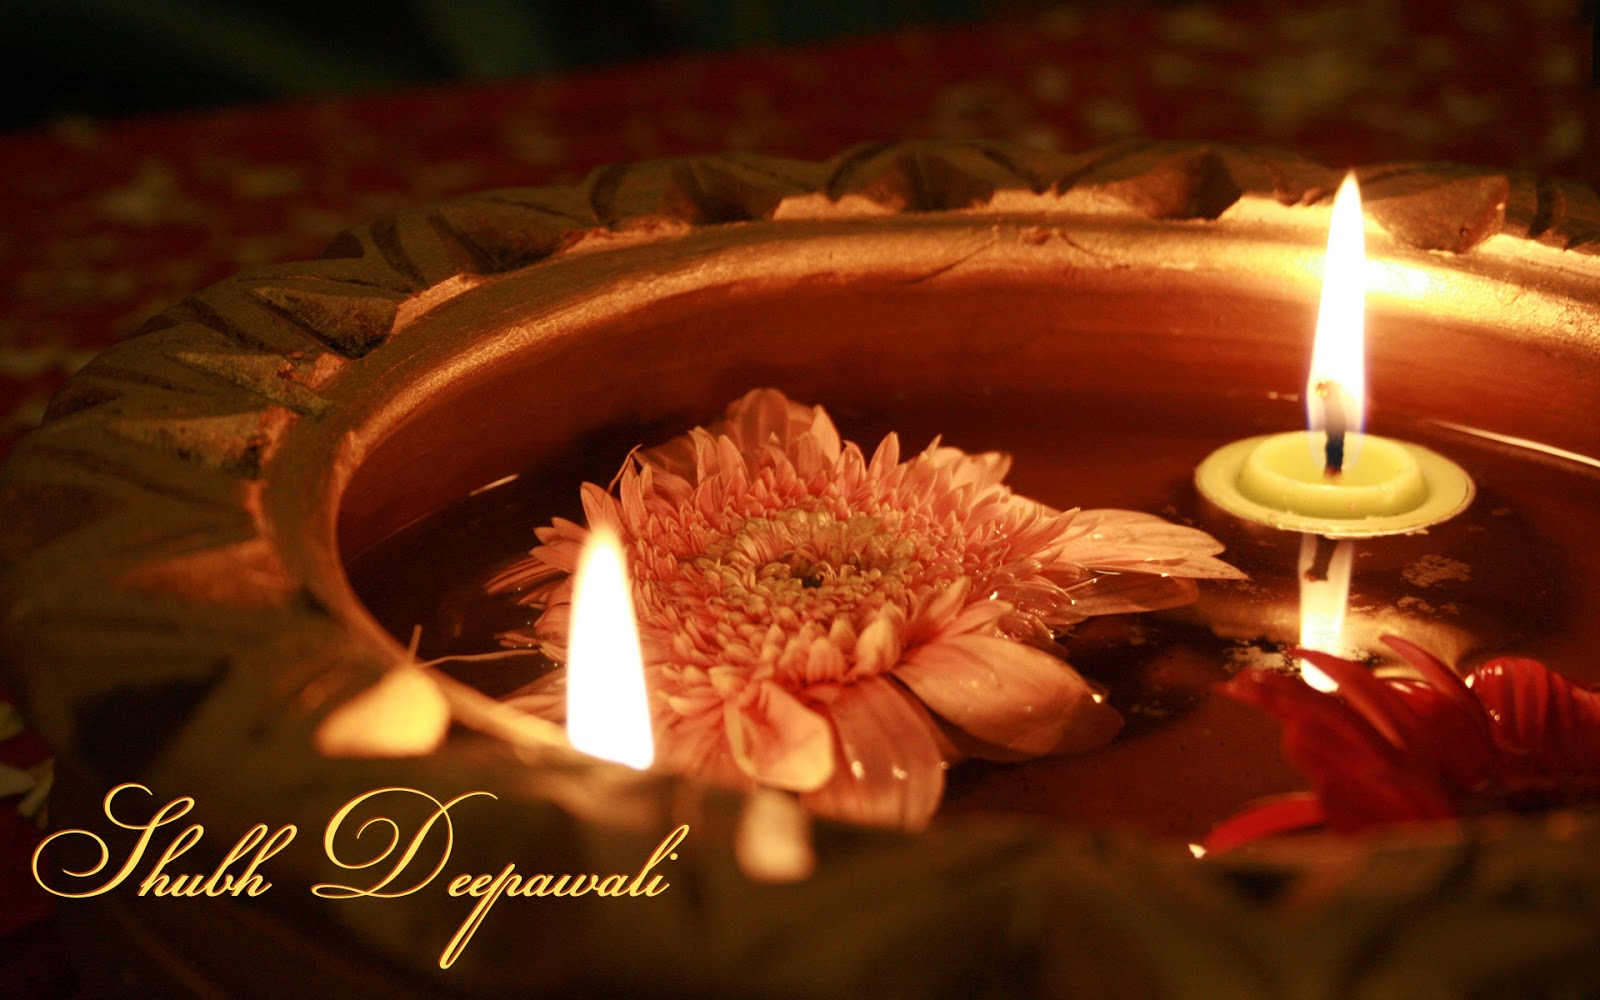 pictures deepavali greetings wallpapers - photo #40